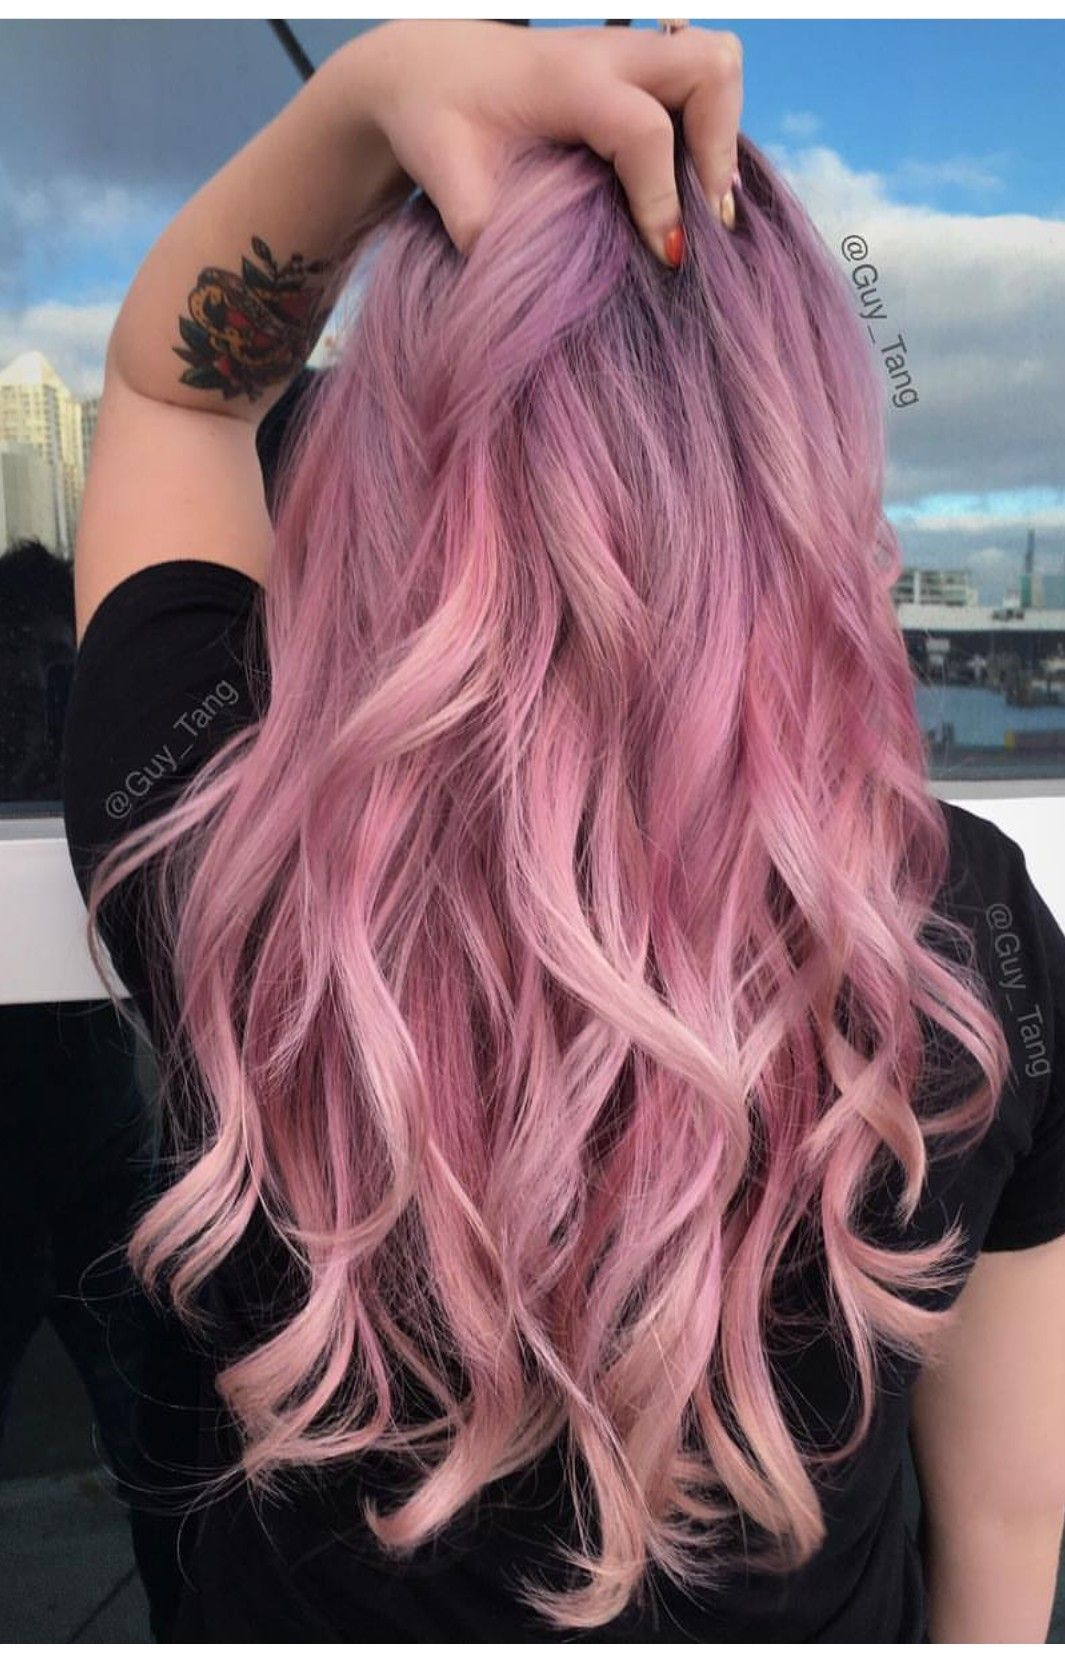 Pastel pink pastelpink hairstyles hair haircolor hairgoals